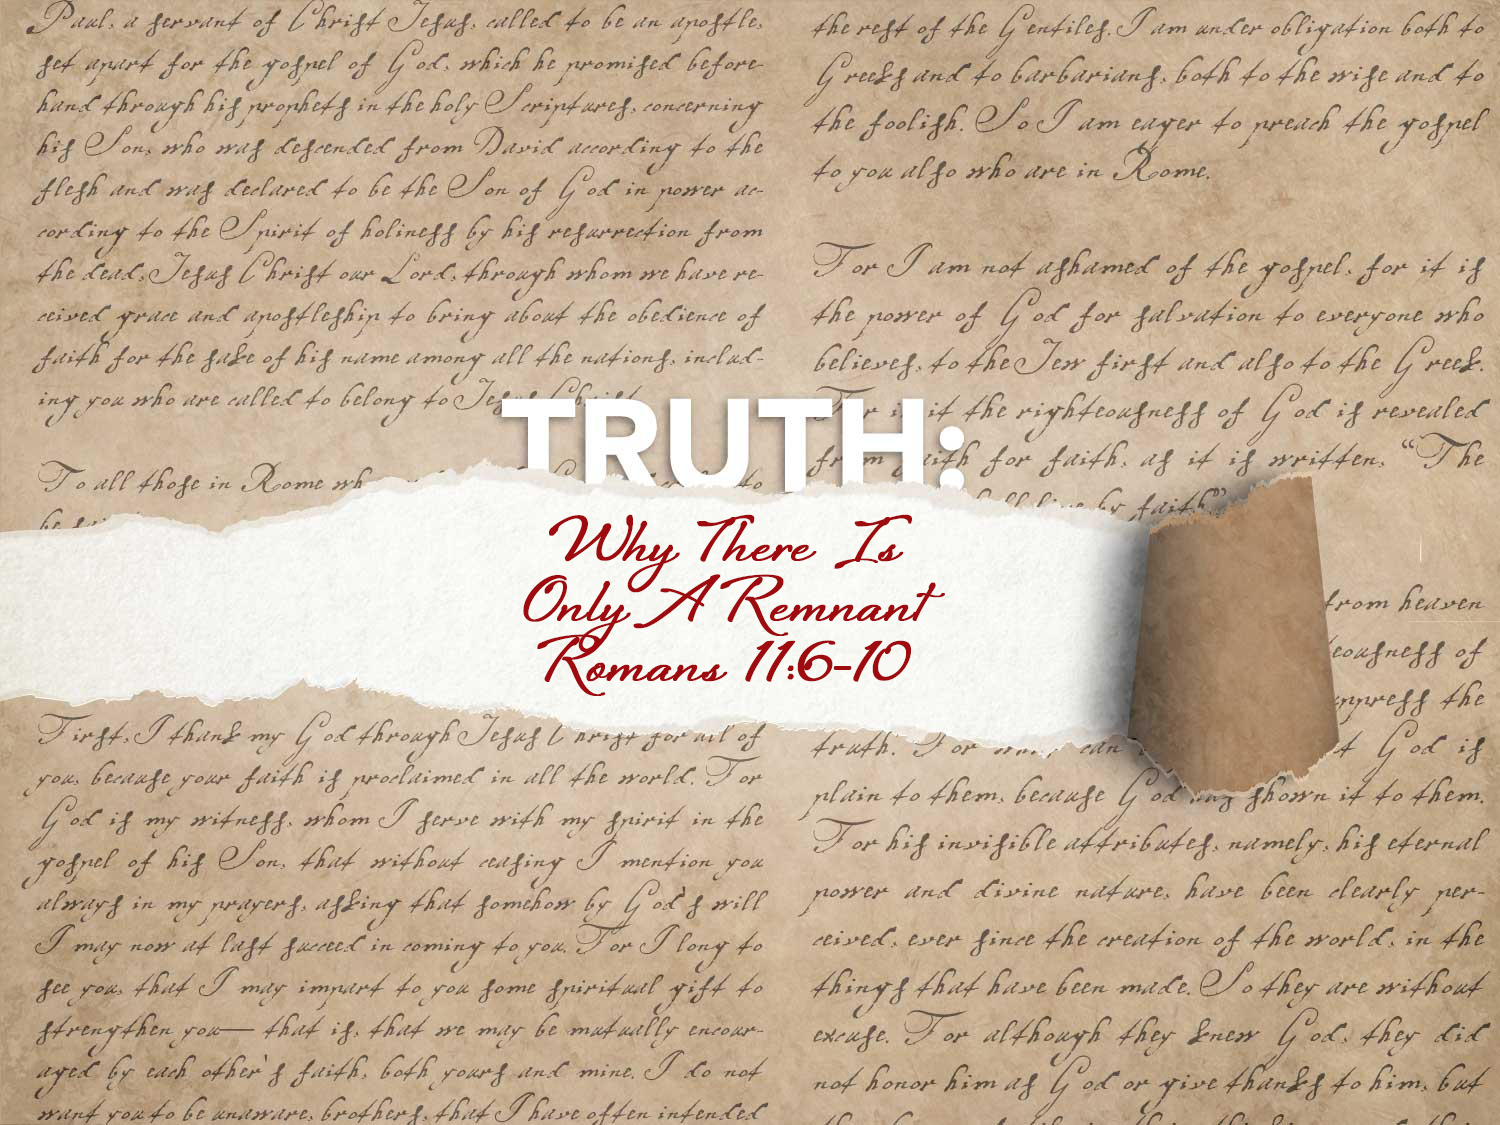 Romans 11:6-10 Why There Is Only A Remnant